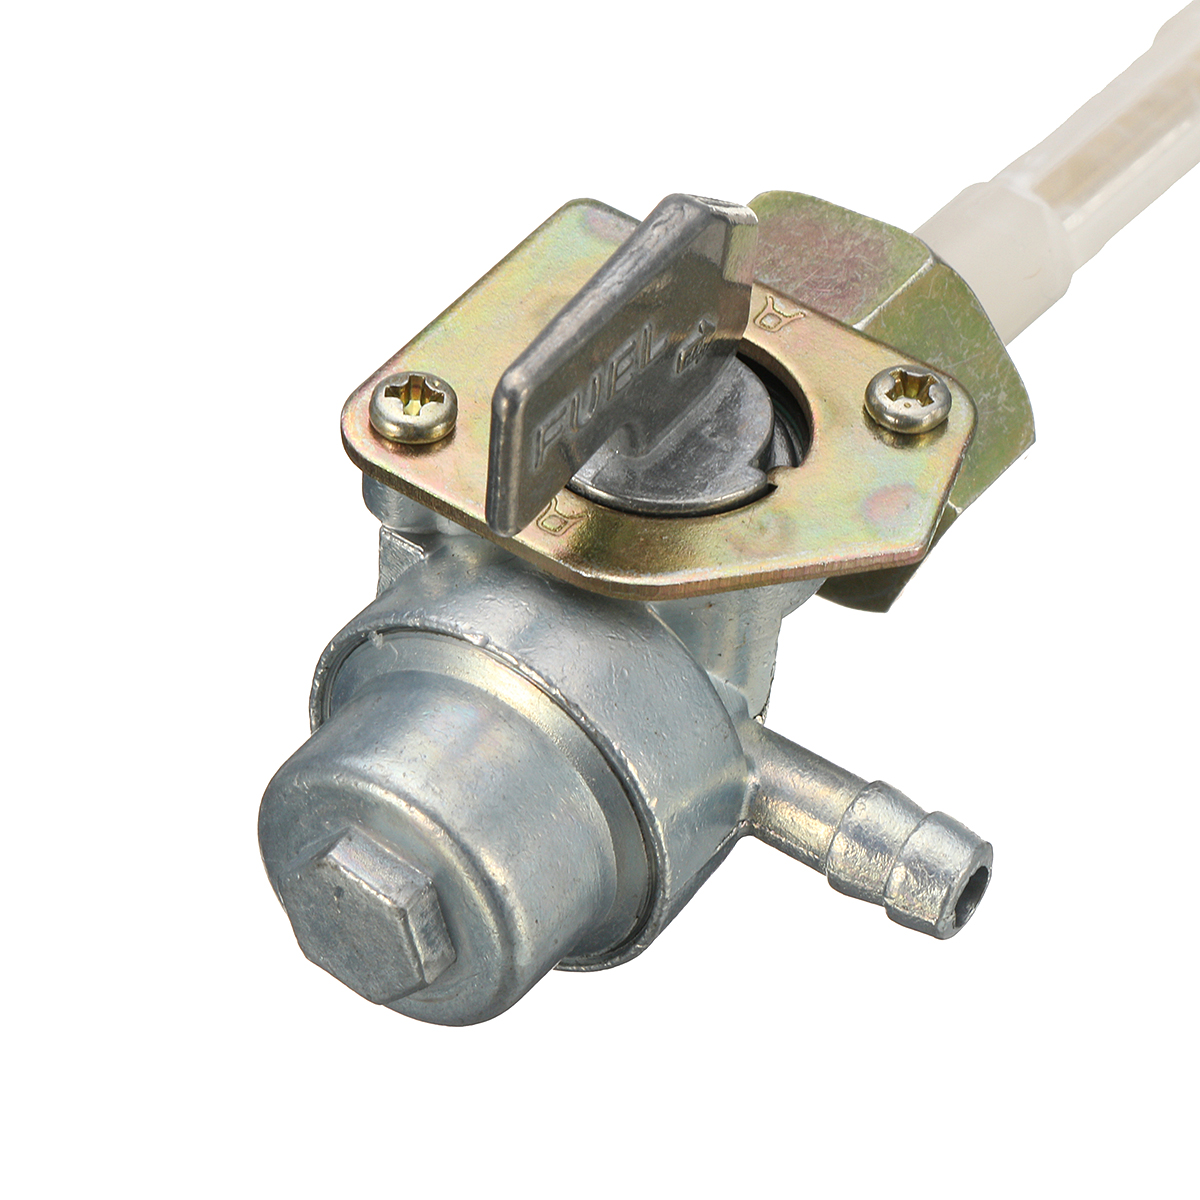 Fuel Gas Tank Petcock Valve Switch For Honda Vintage Motorcycle 18mm x 1mm